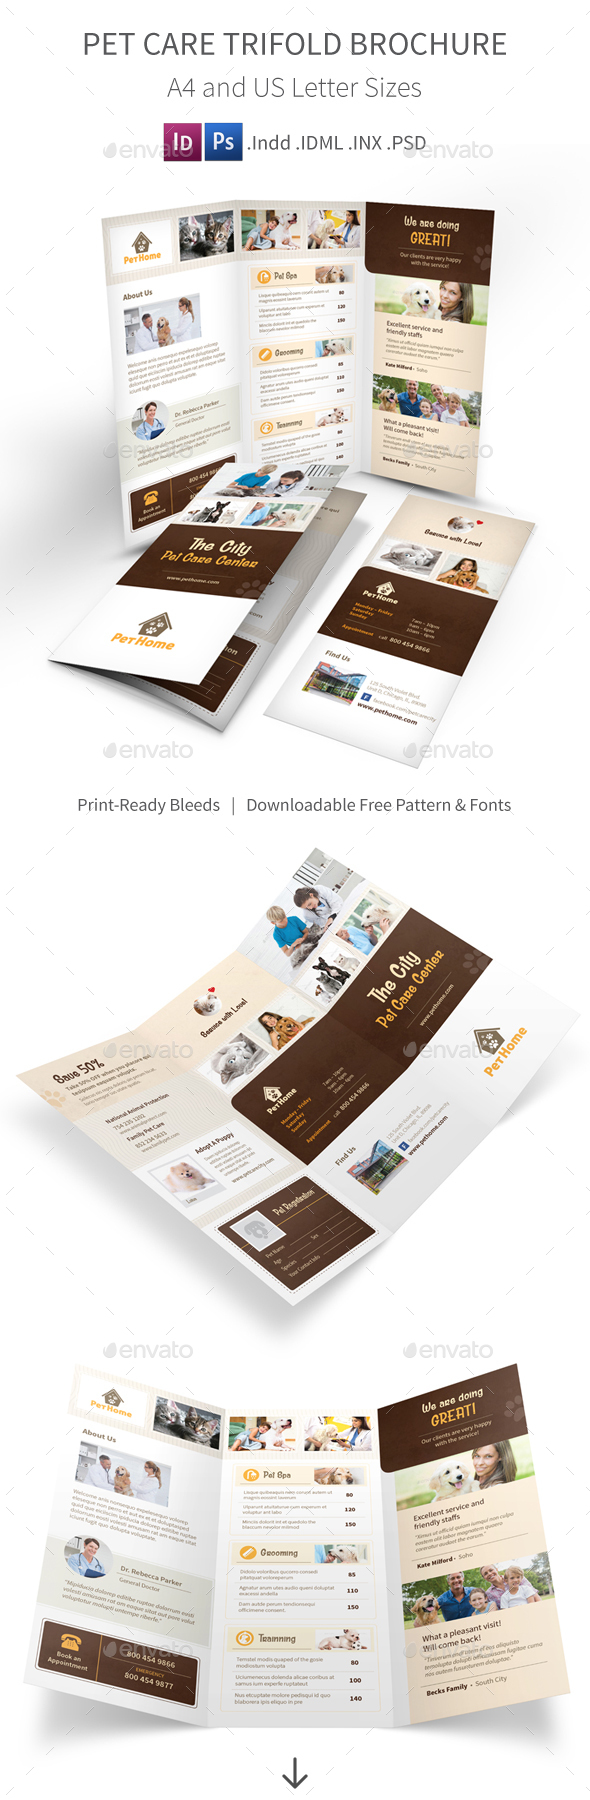 animal shelter pet adoption tri fold brochure template by pet care trifold brochure 3